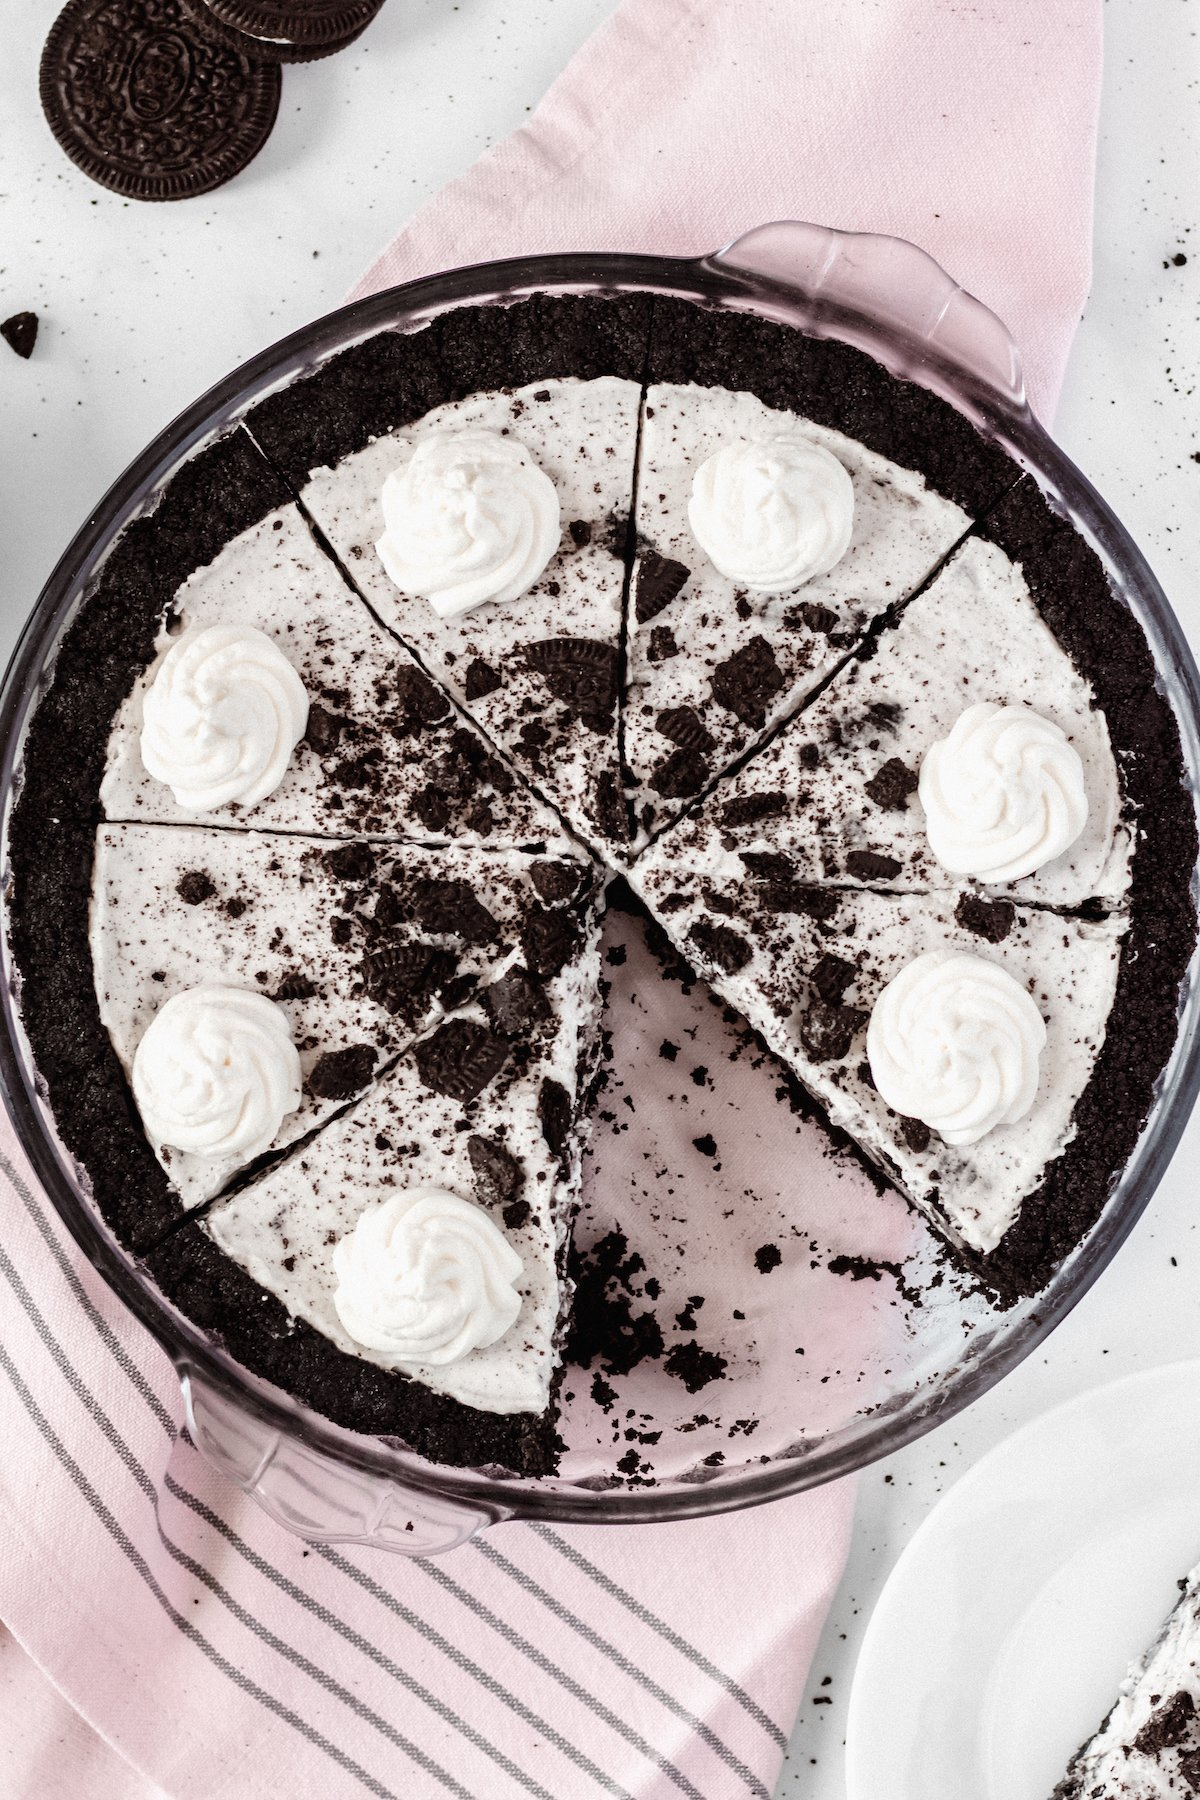 Overhead view of a cookies & cream oreo pie in a glass pie dish. A slice has been removed.